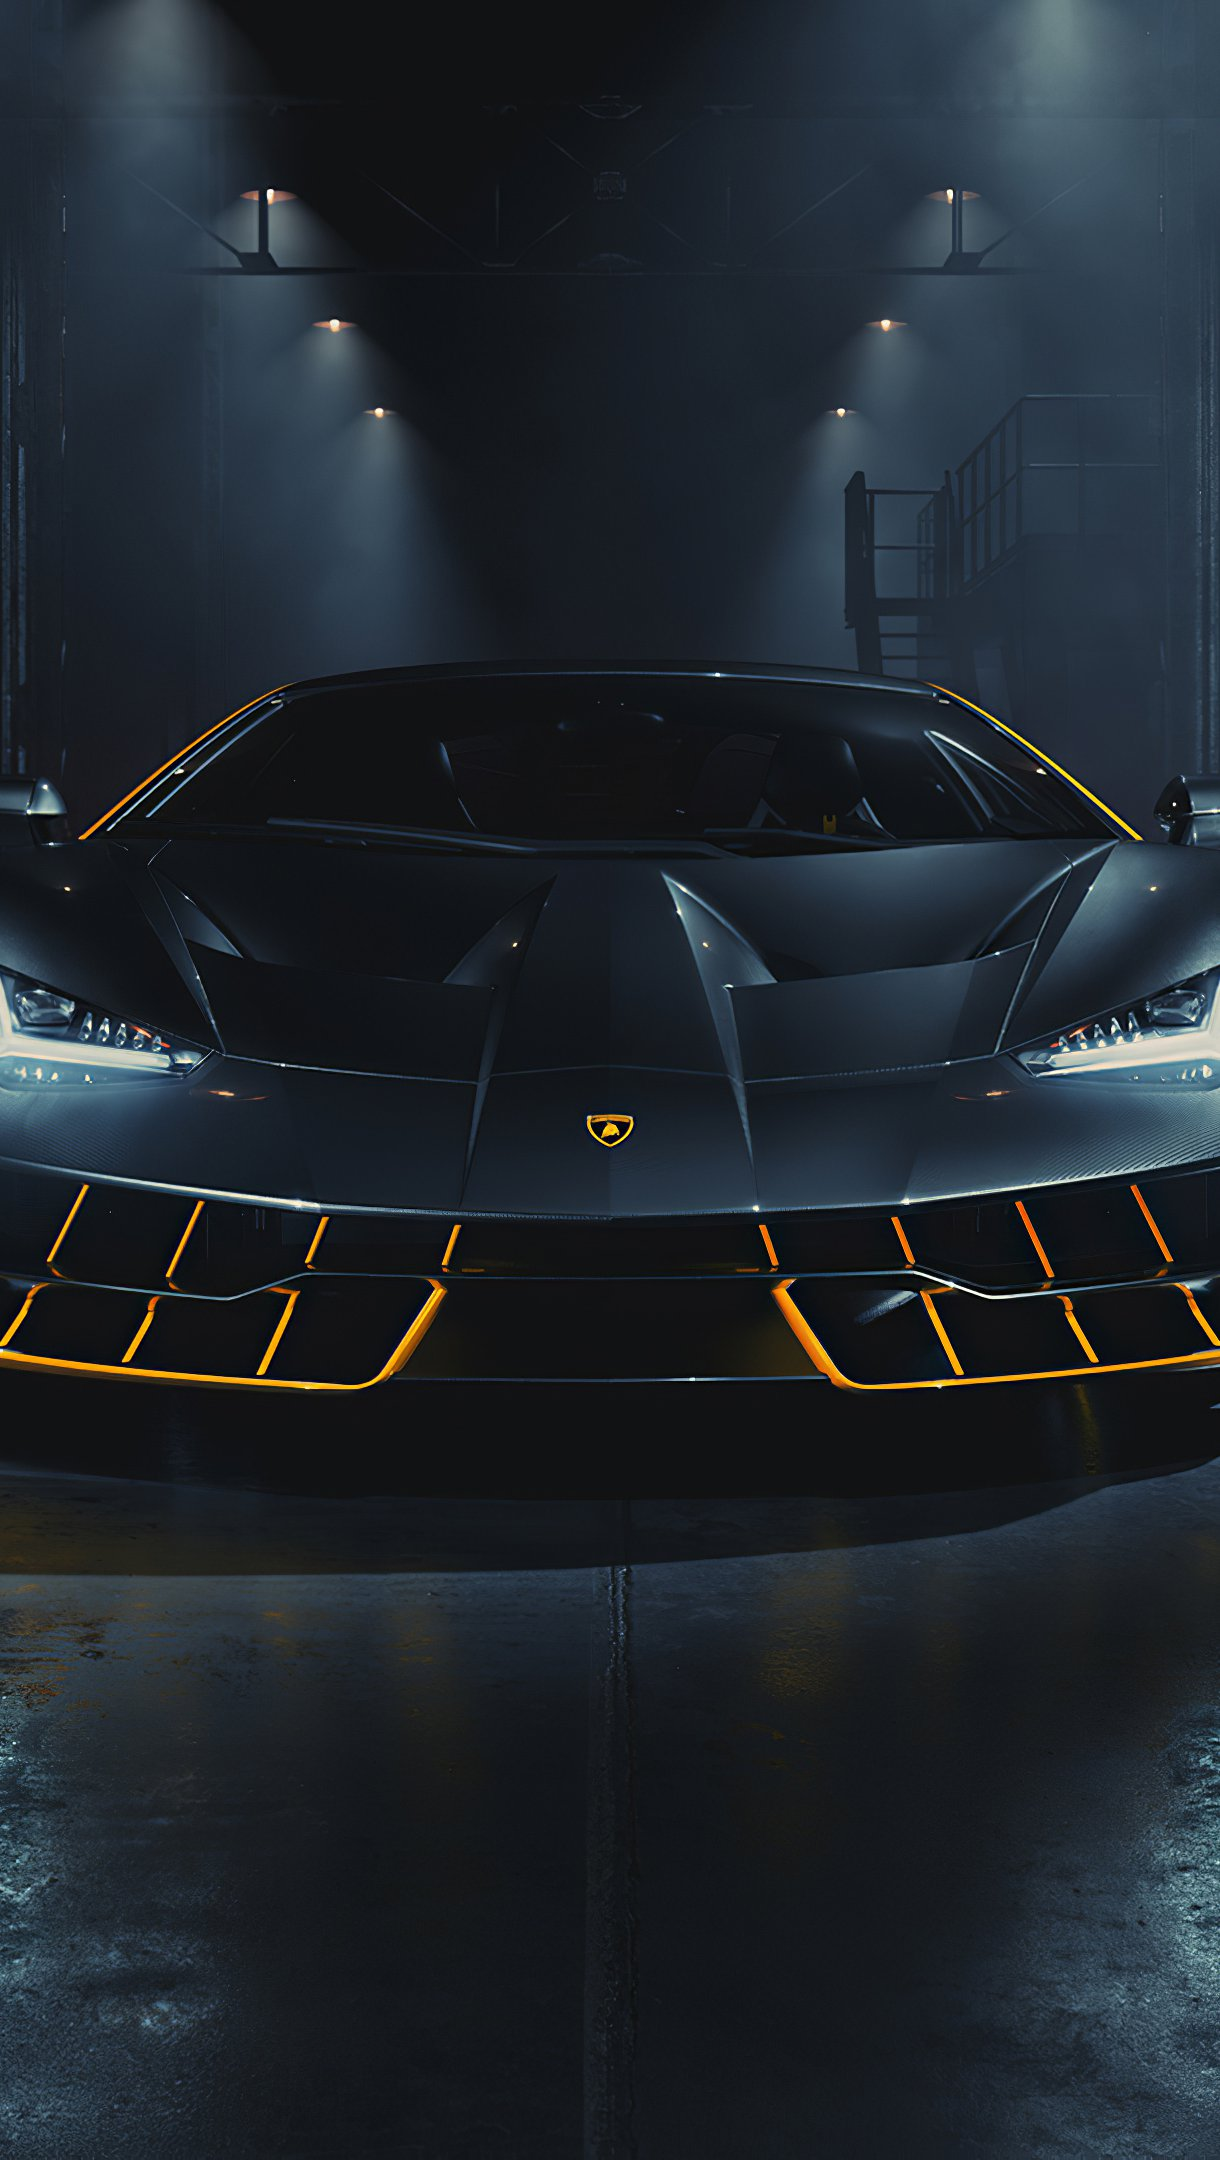 Wallpaper Black Lamborghini Centenario Vertical